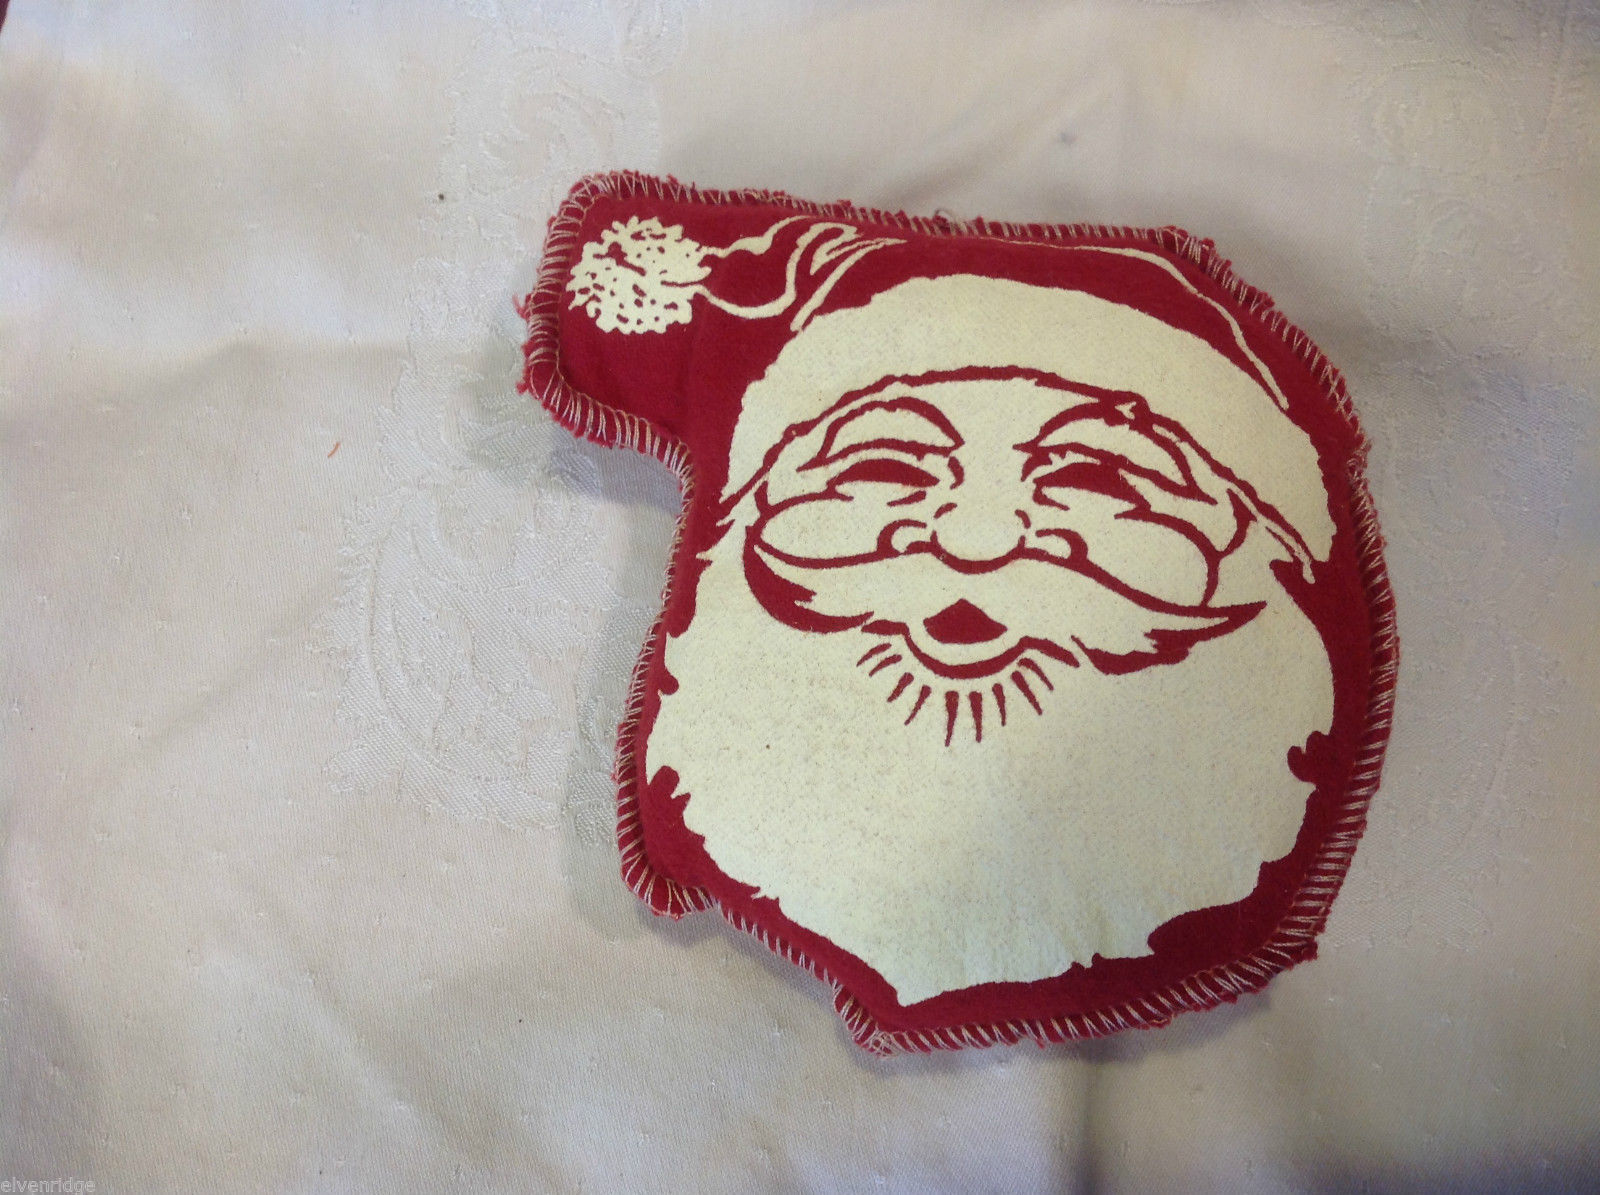 Set of 6 red felt Santa head puffy pillow ornaments in traditional stamp style